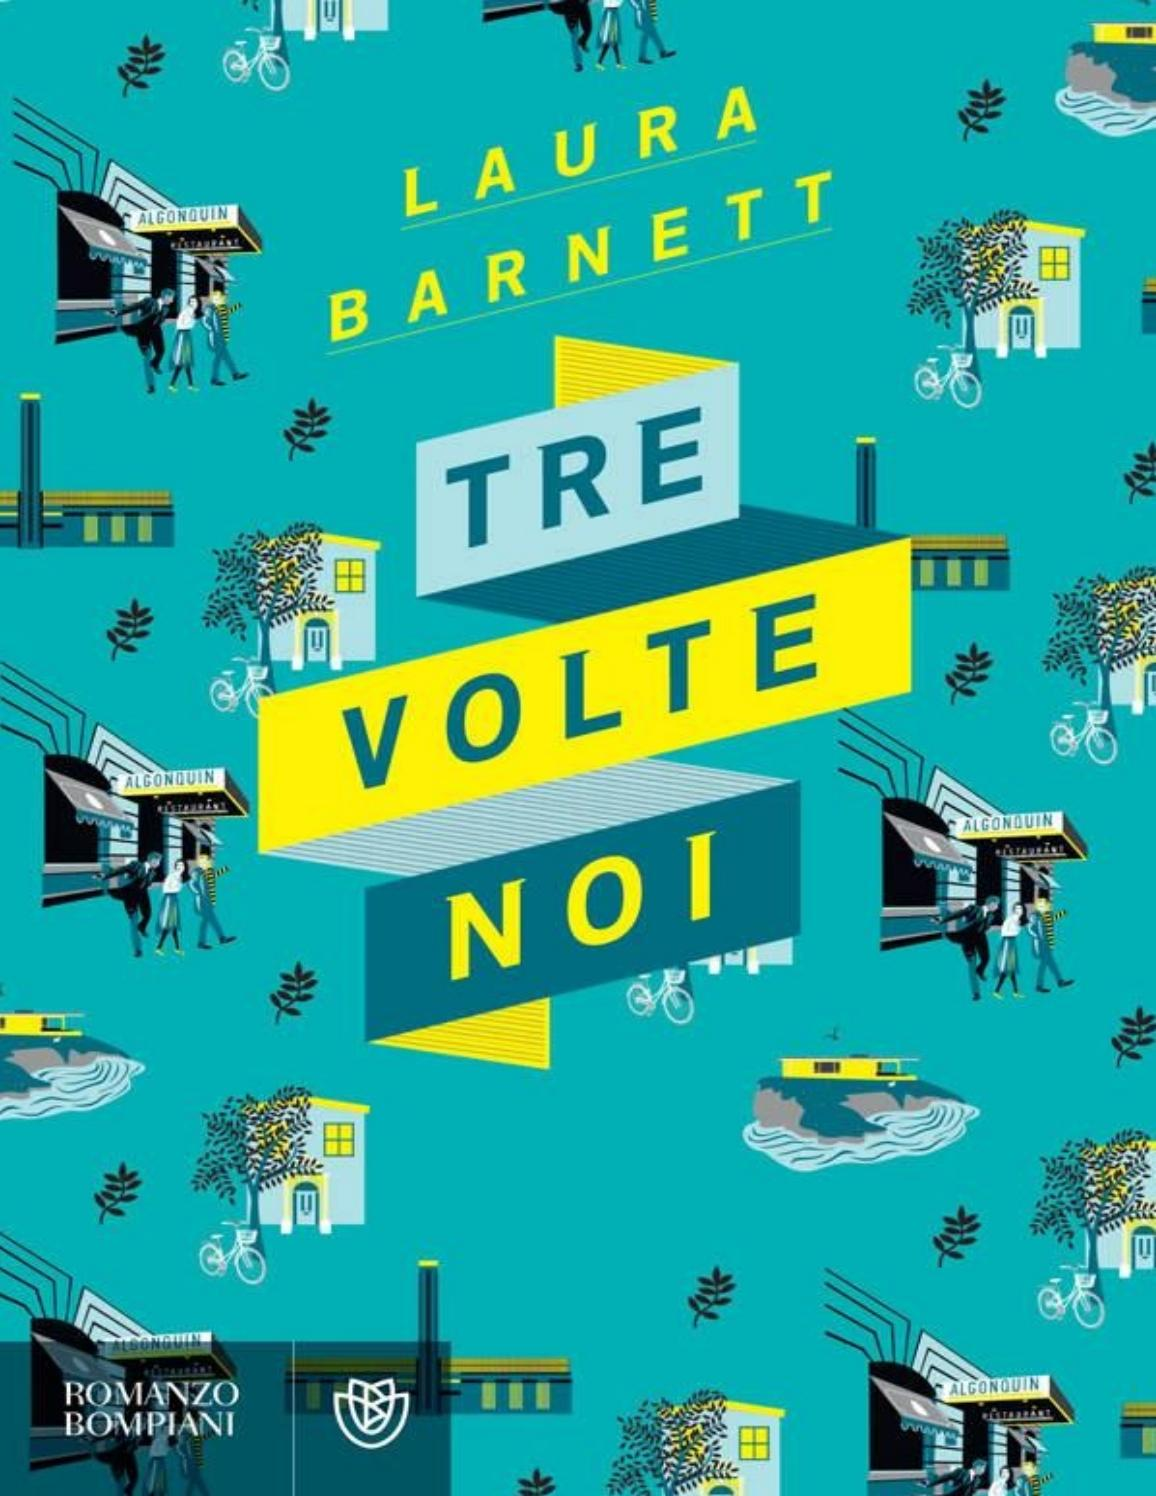 Tre volte noi laura barnett by Emma Angelini de Walther - issuu d88506d4407